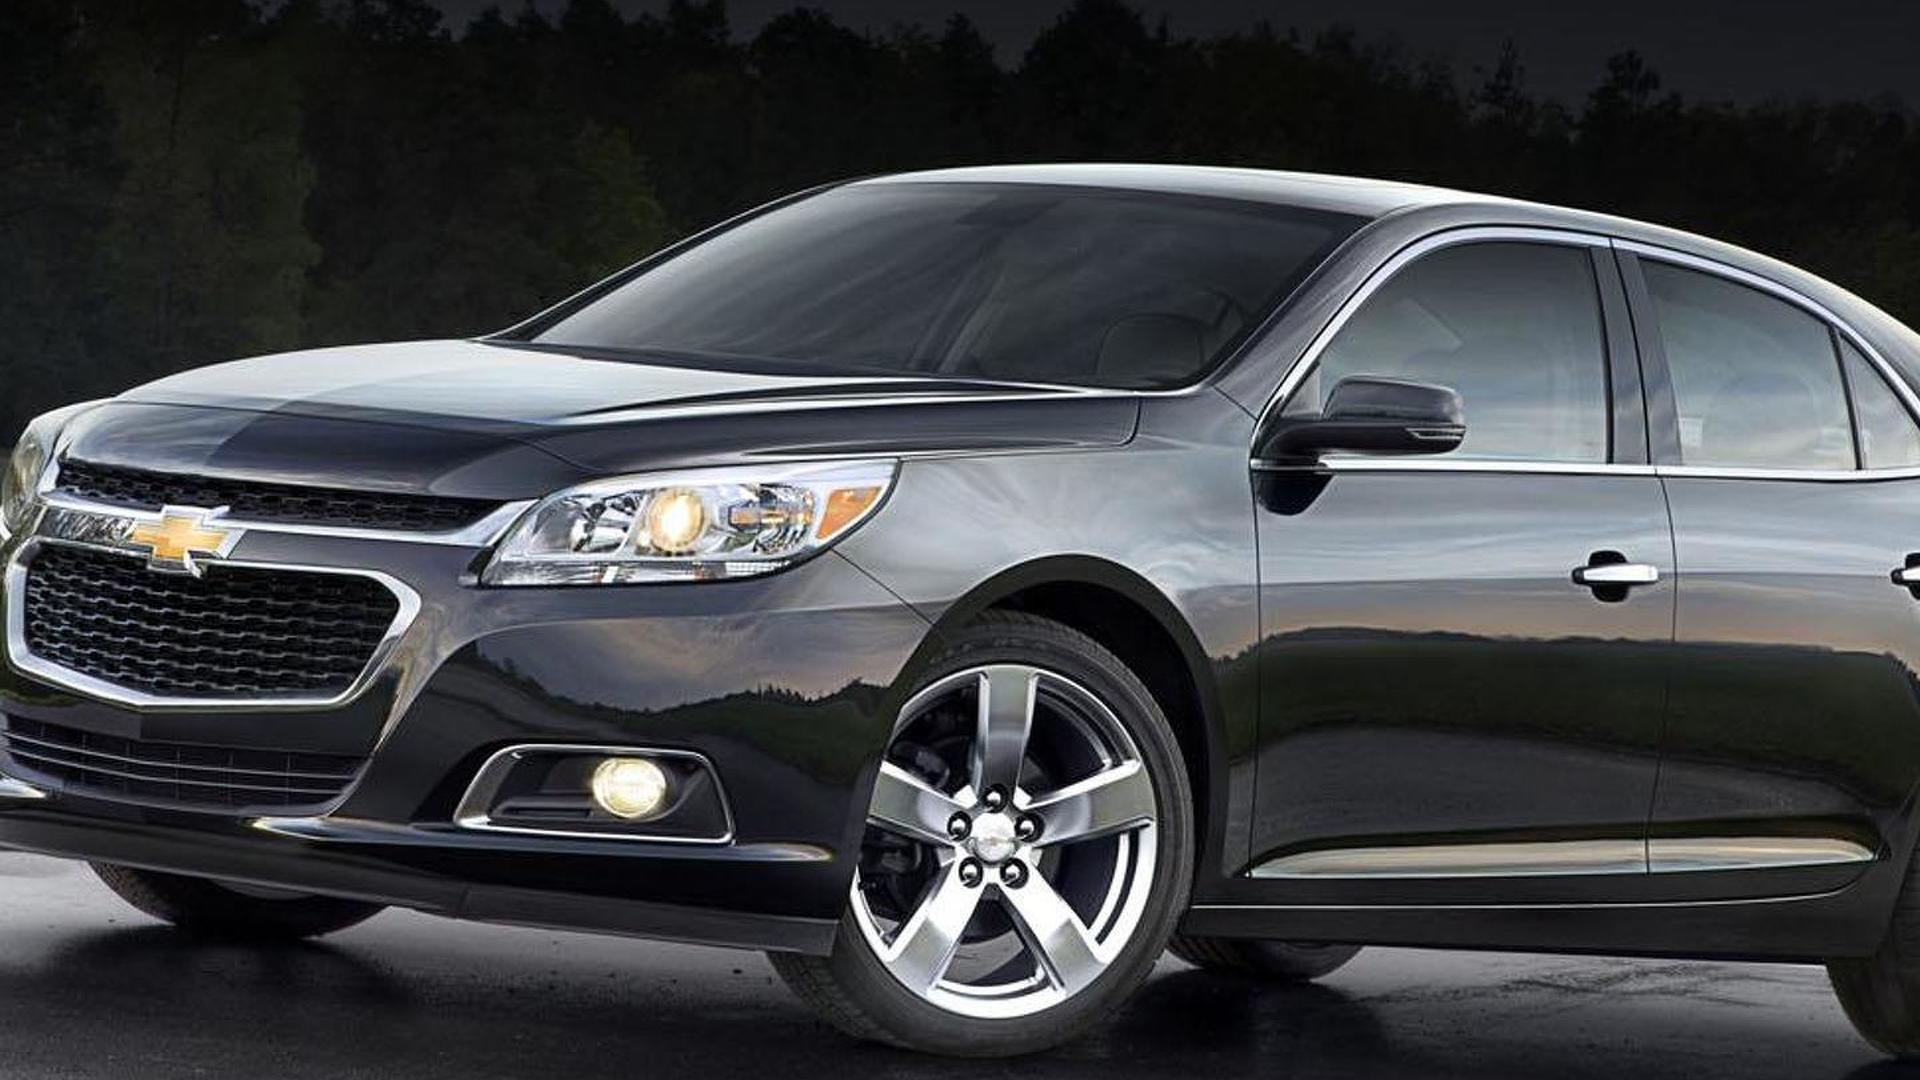 2014 chevrolet malibu facelift revealed. Black Bedroom Furniture Sets. Home Design Ideas